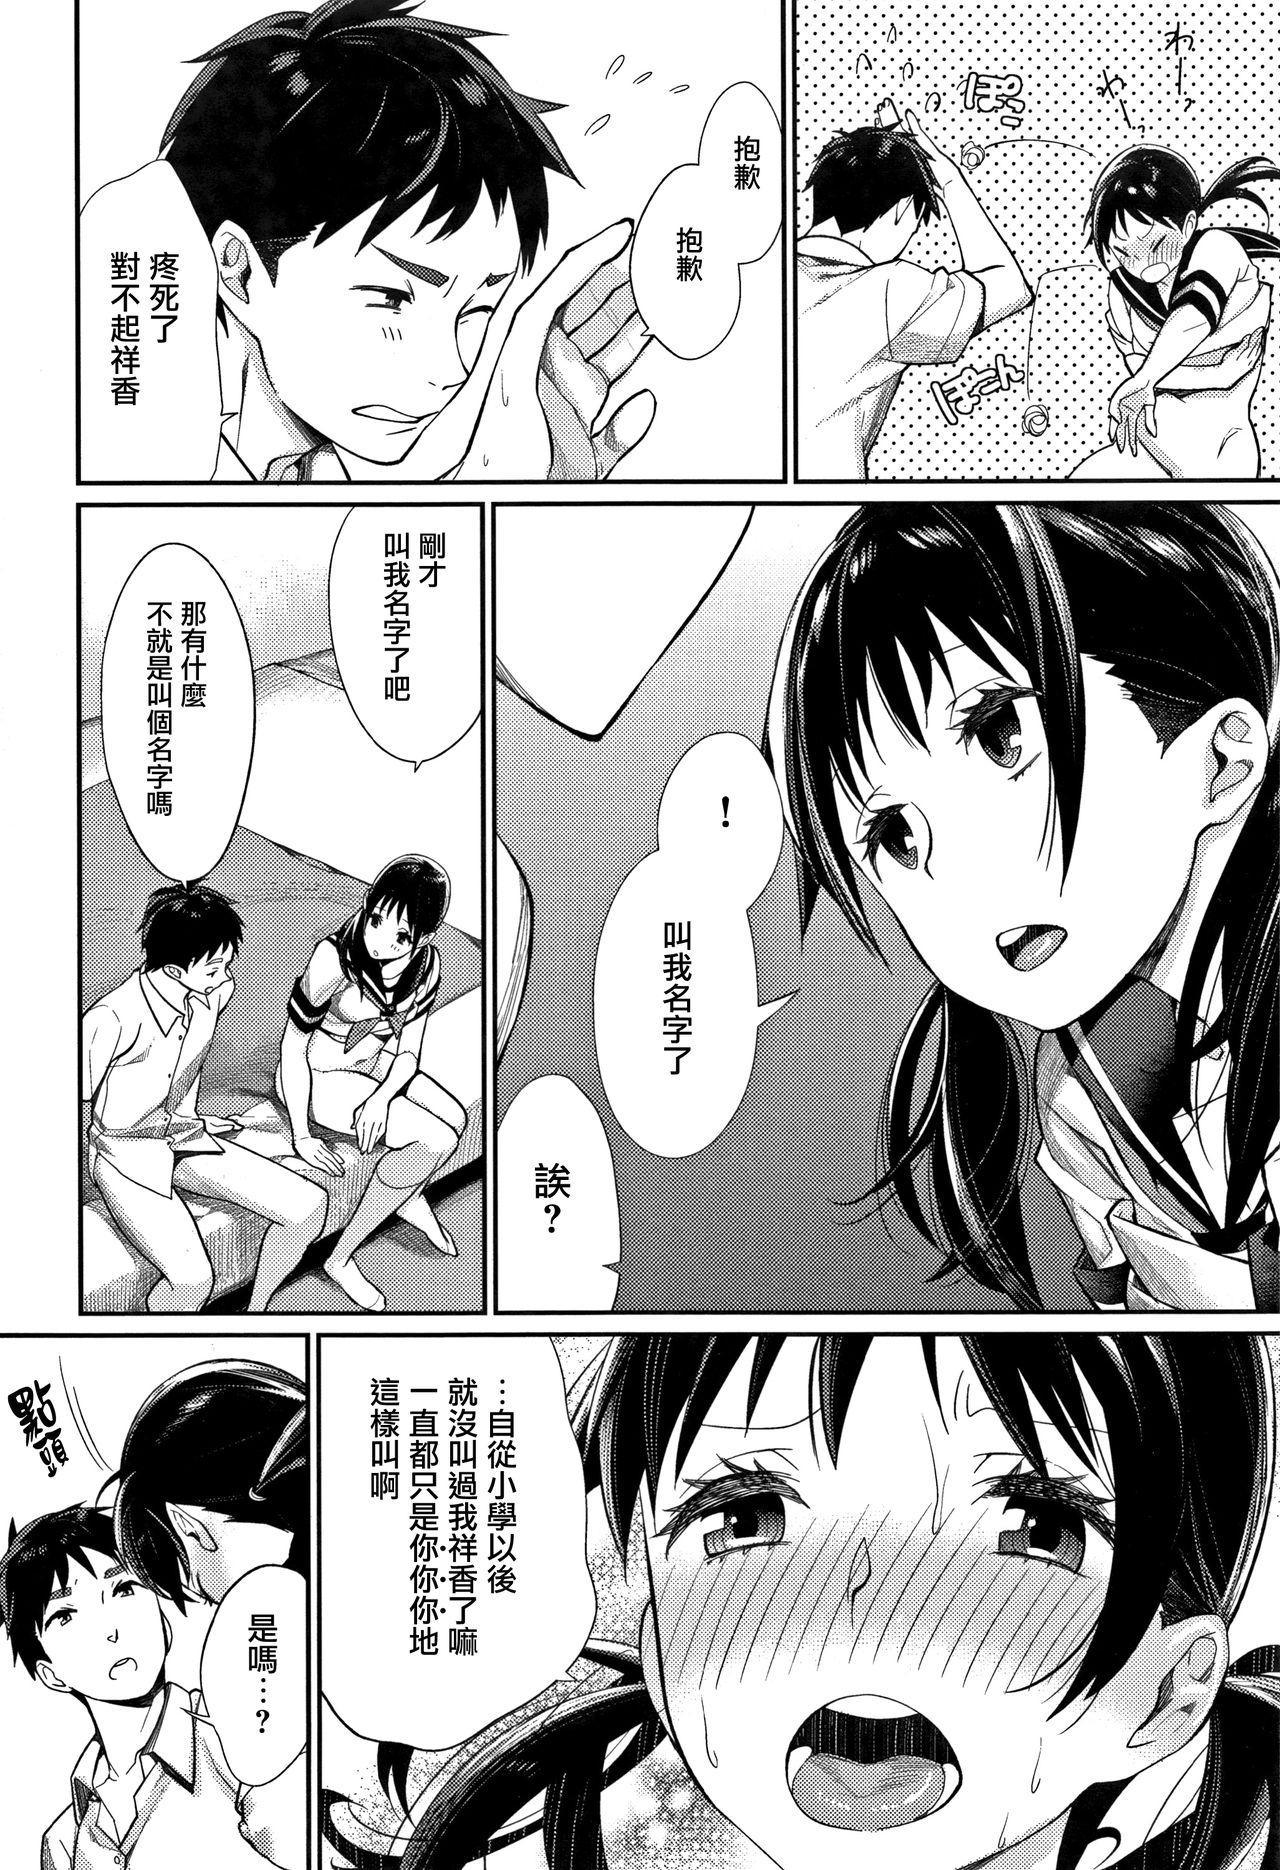 [MGMEE] Bokura no Etude - Our H Chu Do Ch.1-7 [Chinese] [無邪気漢化組] 87